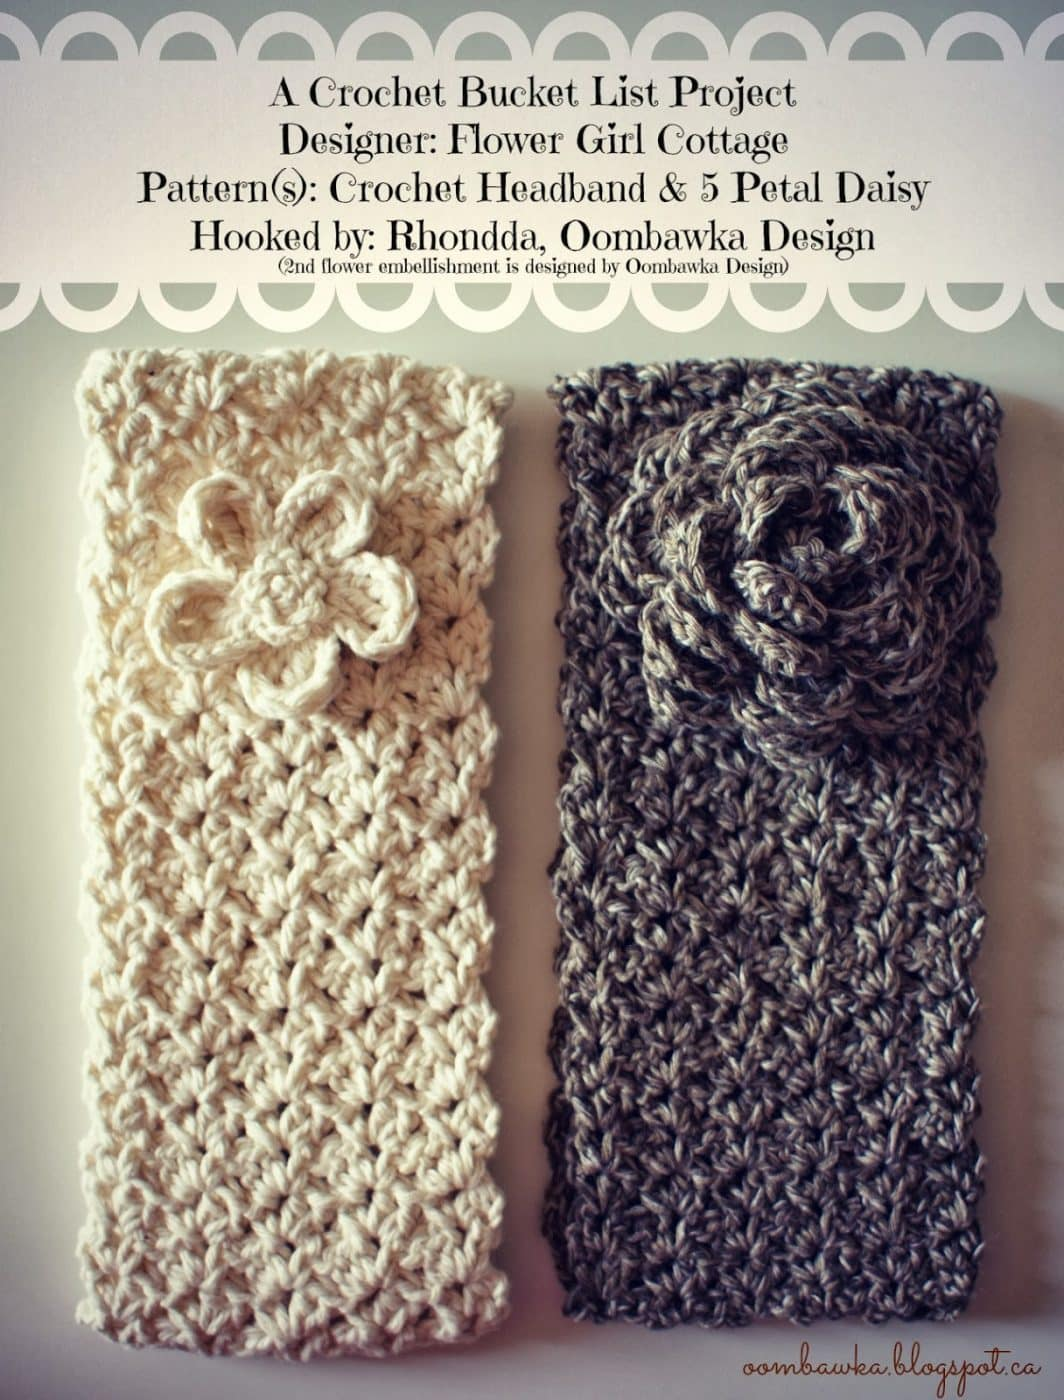 Flower Girl Cottage - FREE Crochet Headband and Flower ...